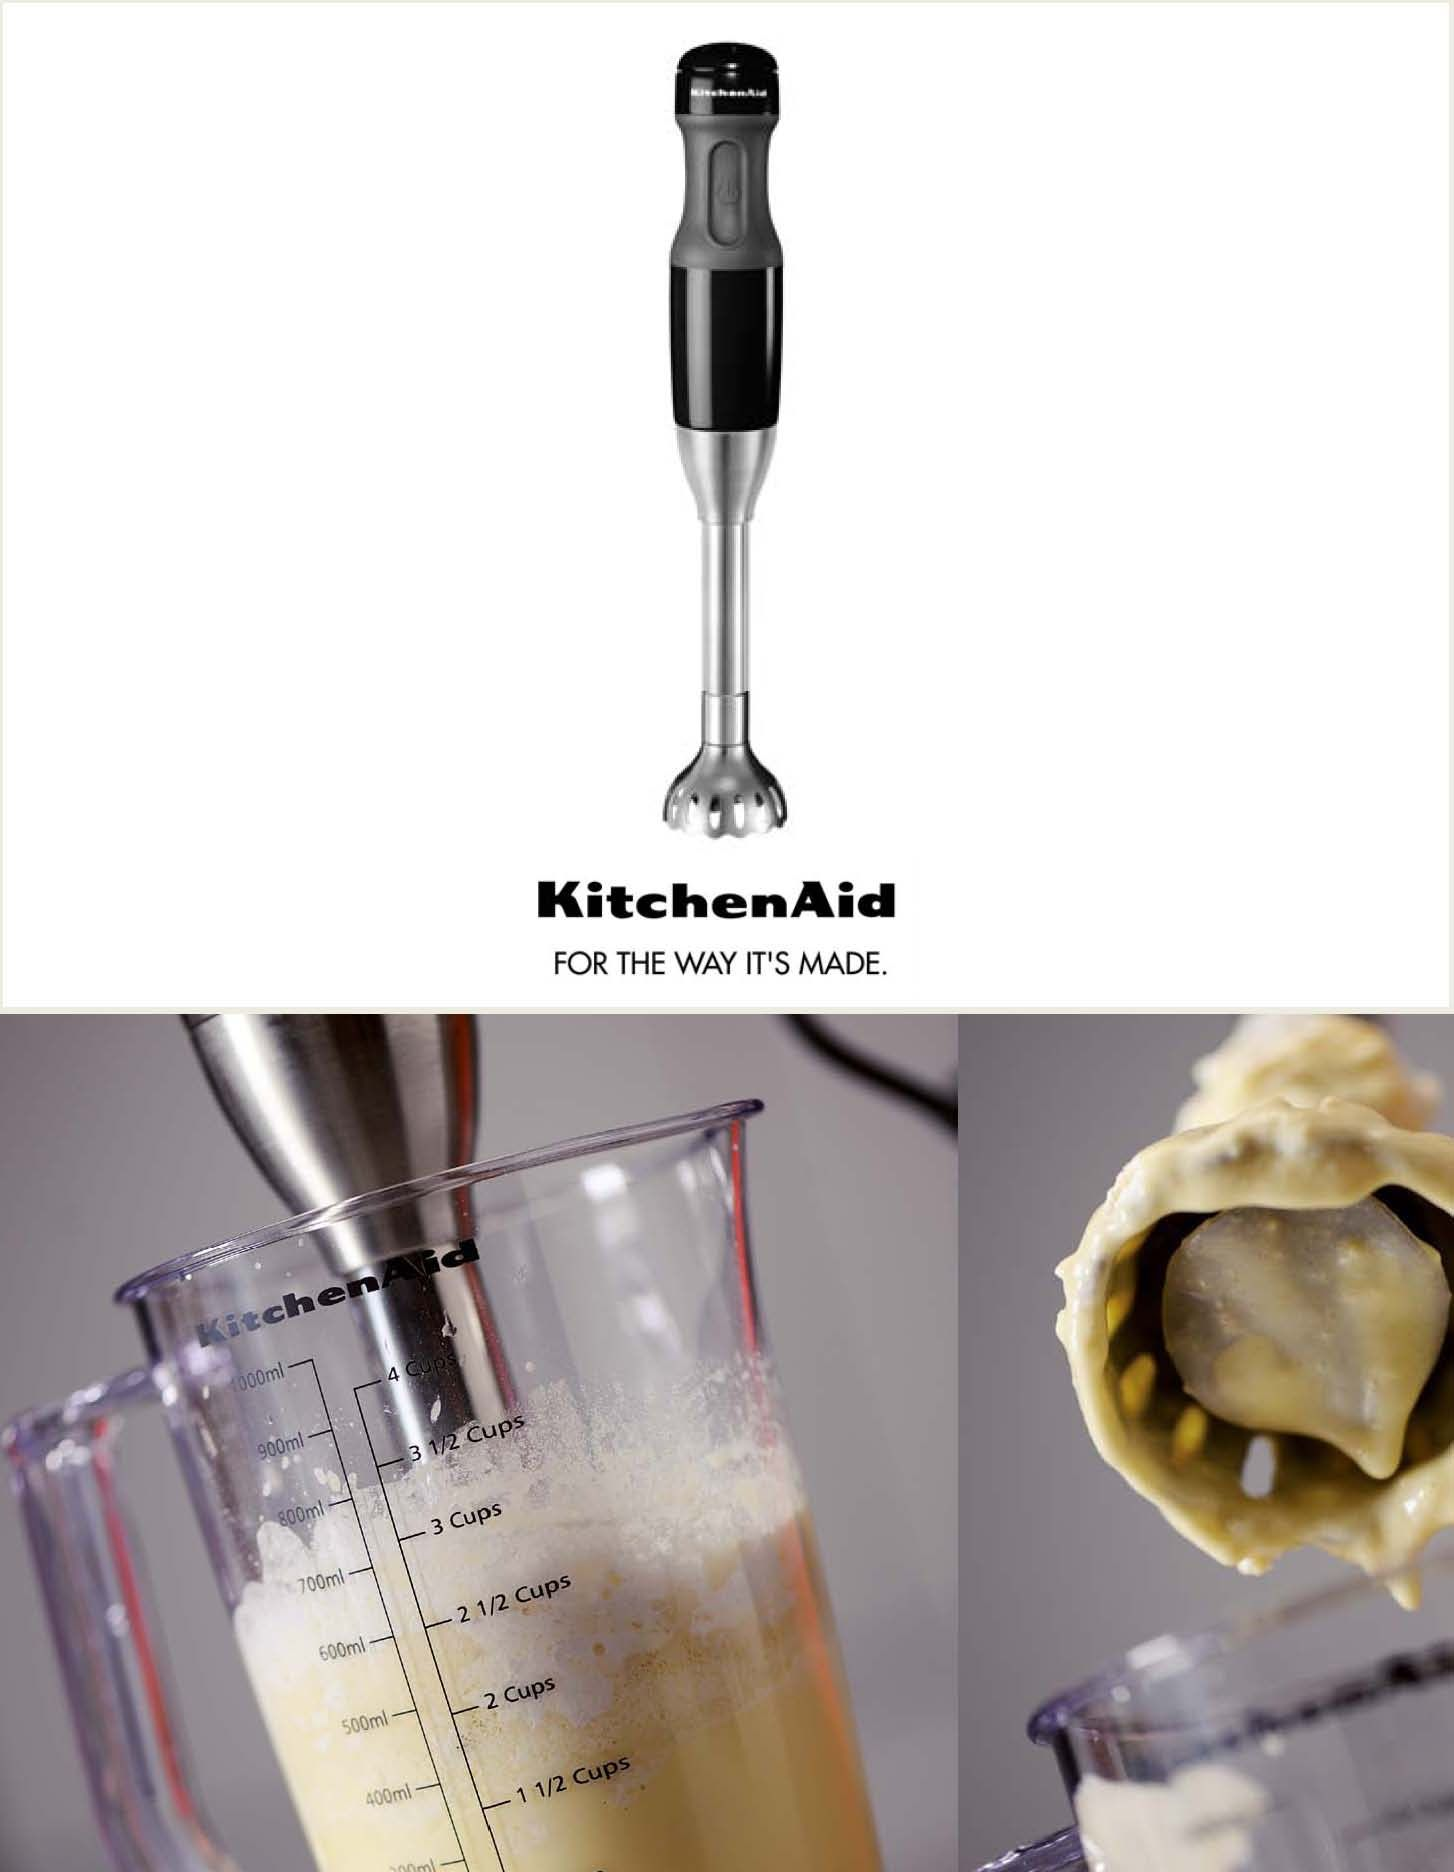 Frother Beater Included As An Attachment With The 5 Speed Hand Blender Used For Frothing Milk Cafe Latte Cappuccino A Milk Cafe Frothing Milk Kitchen Aid